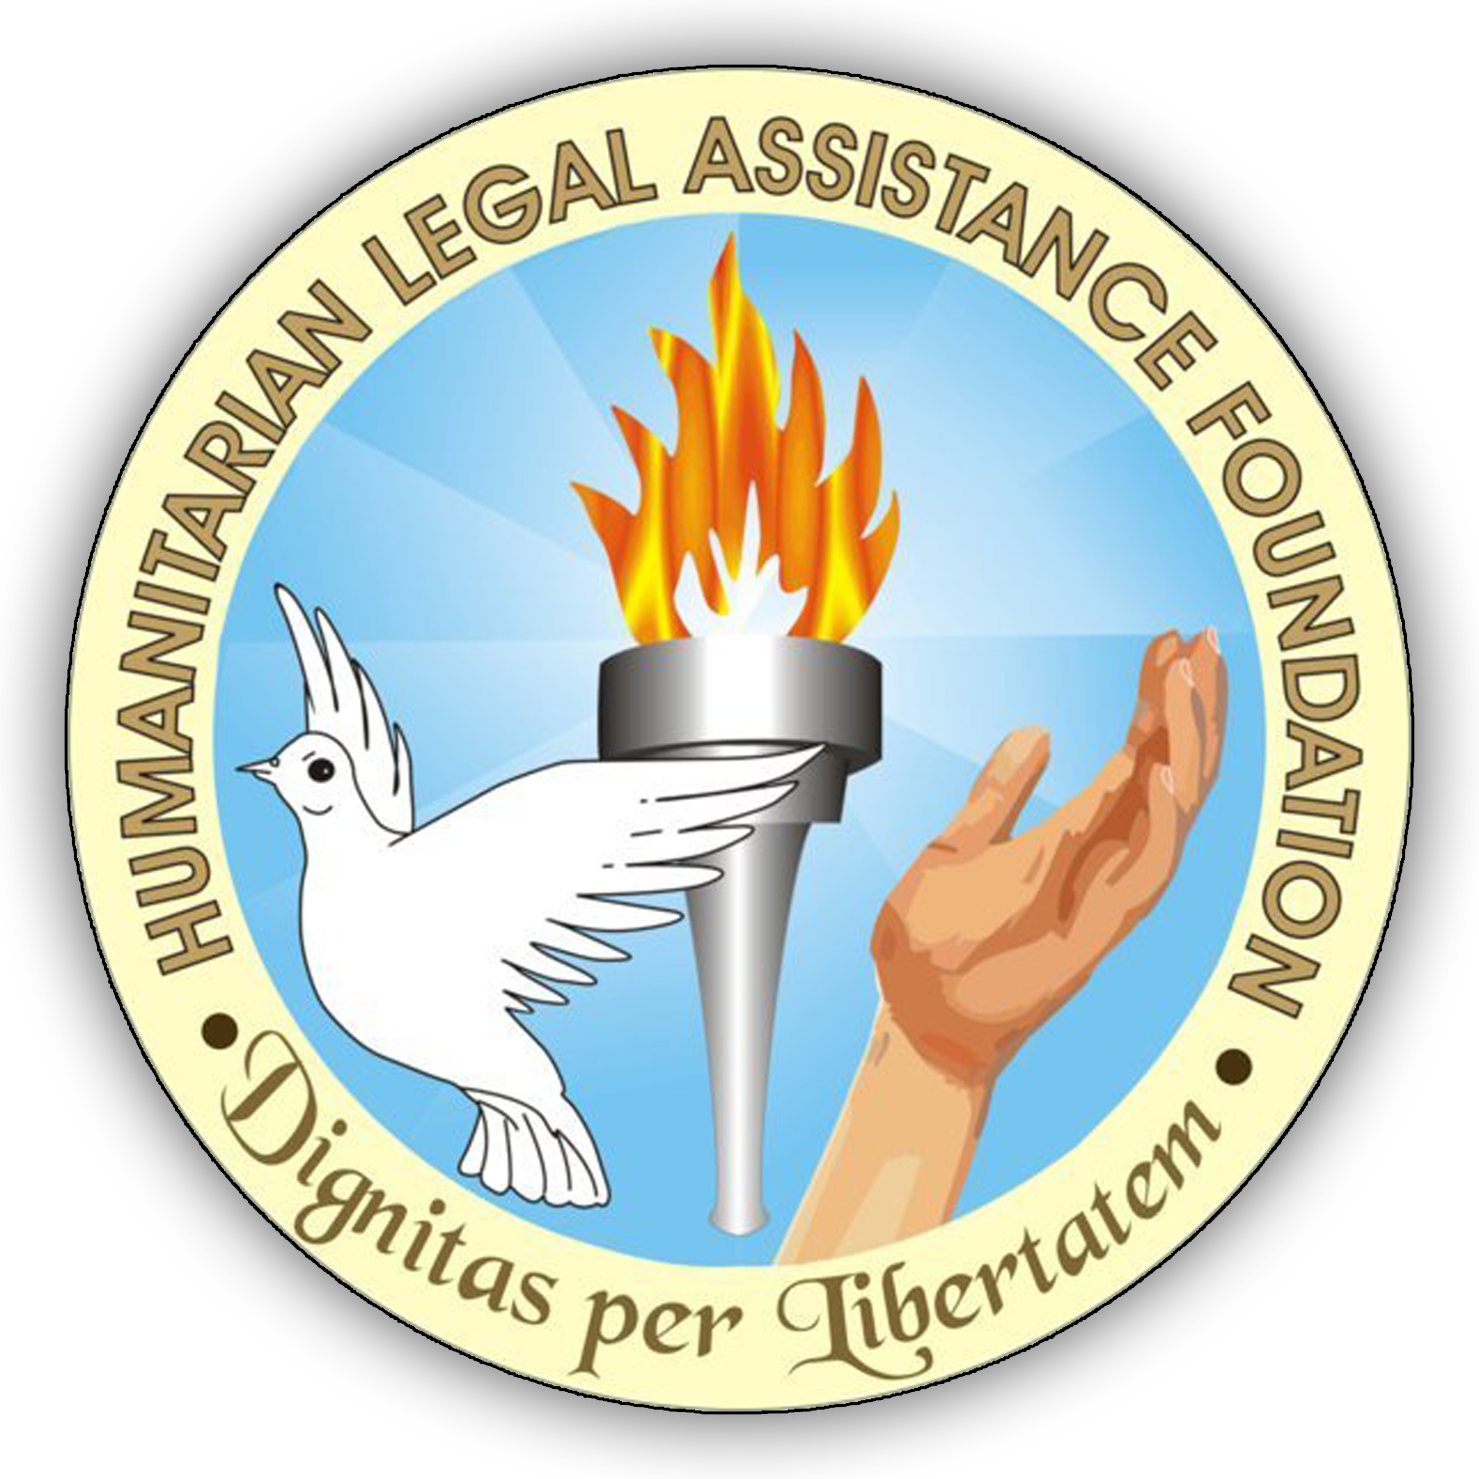 Humanitarian Legal Assistance